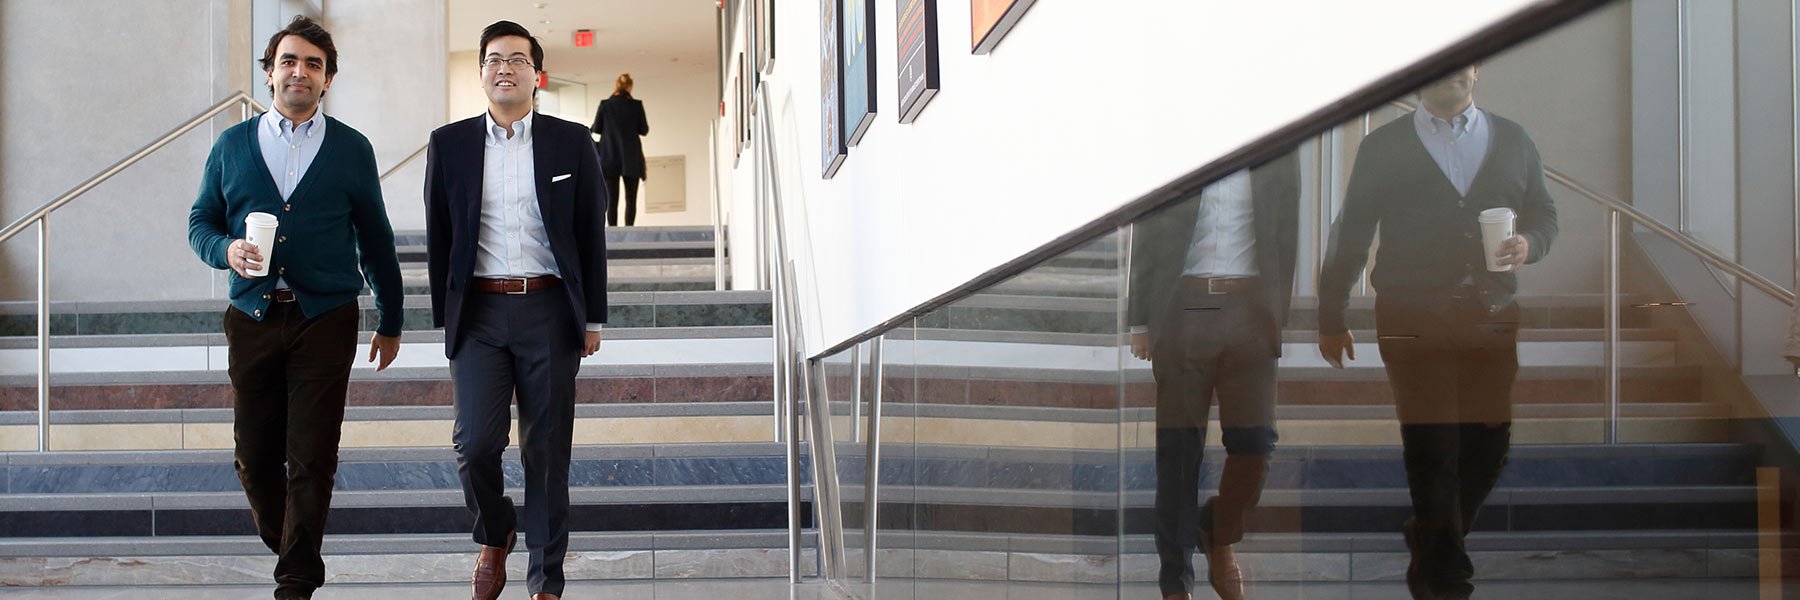 Two people walking down the stairs at SGIS.